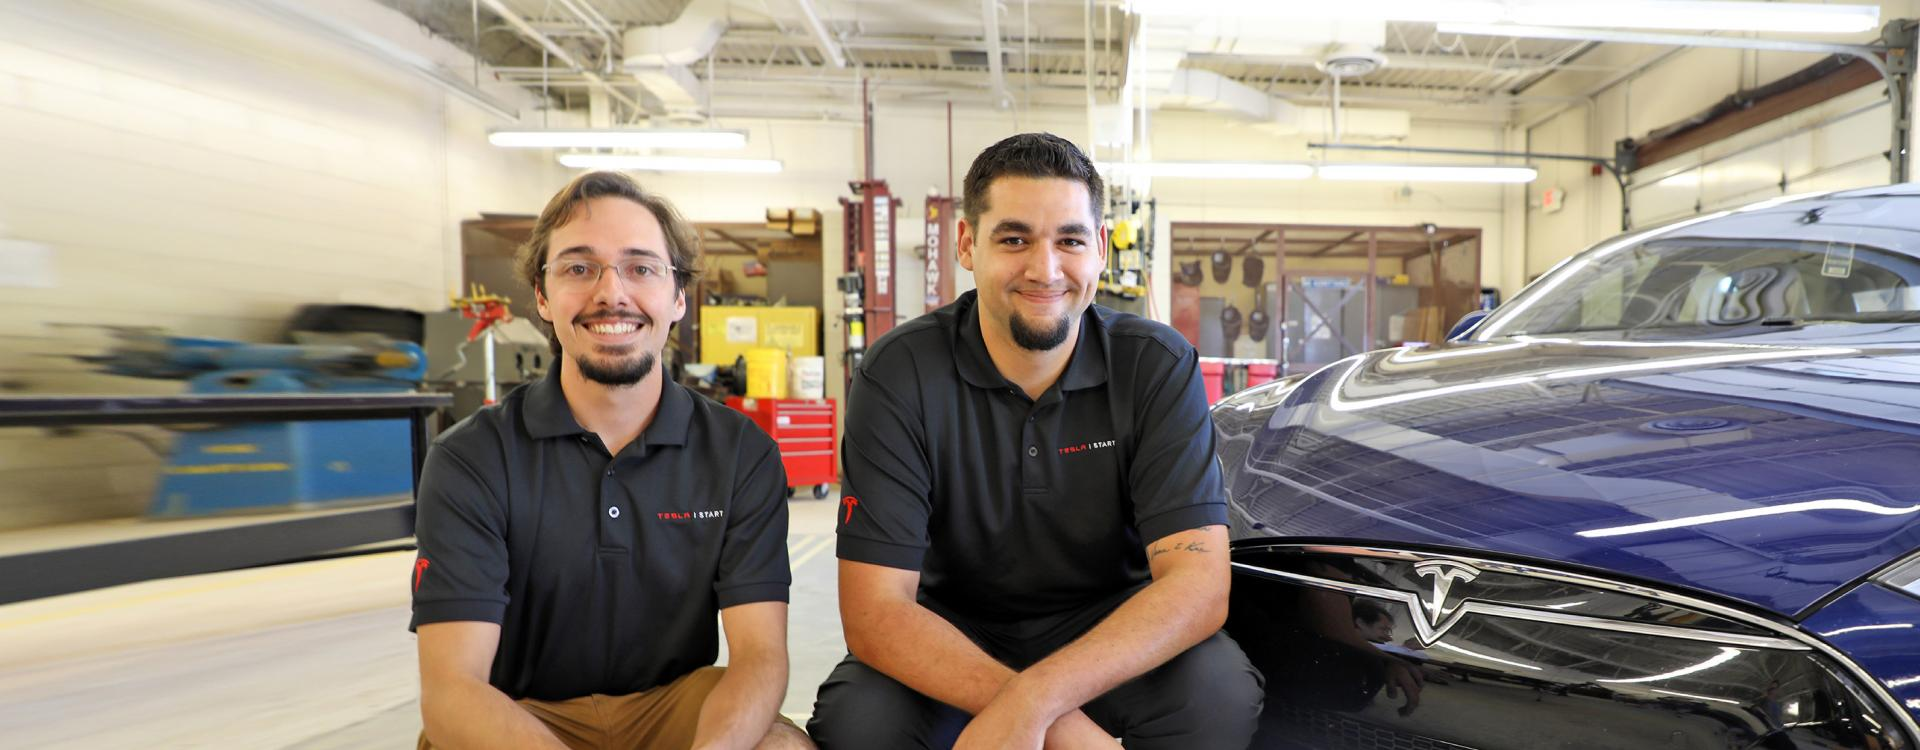 two automotive students on internship sitting next to Tesla car